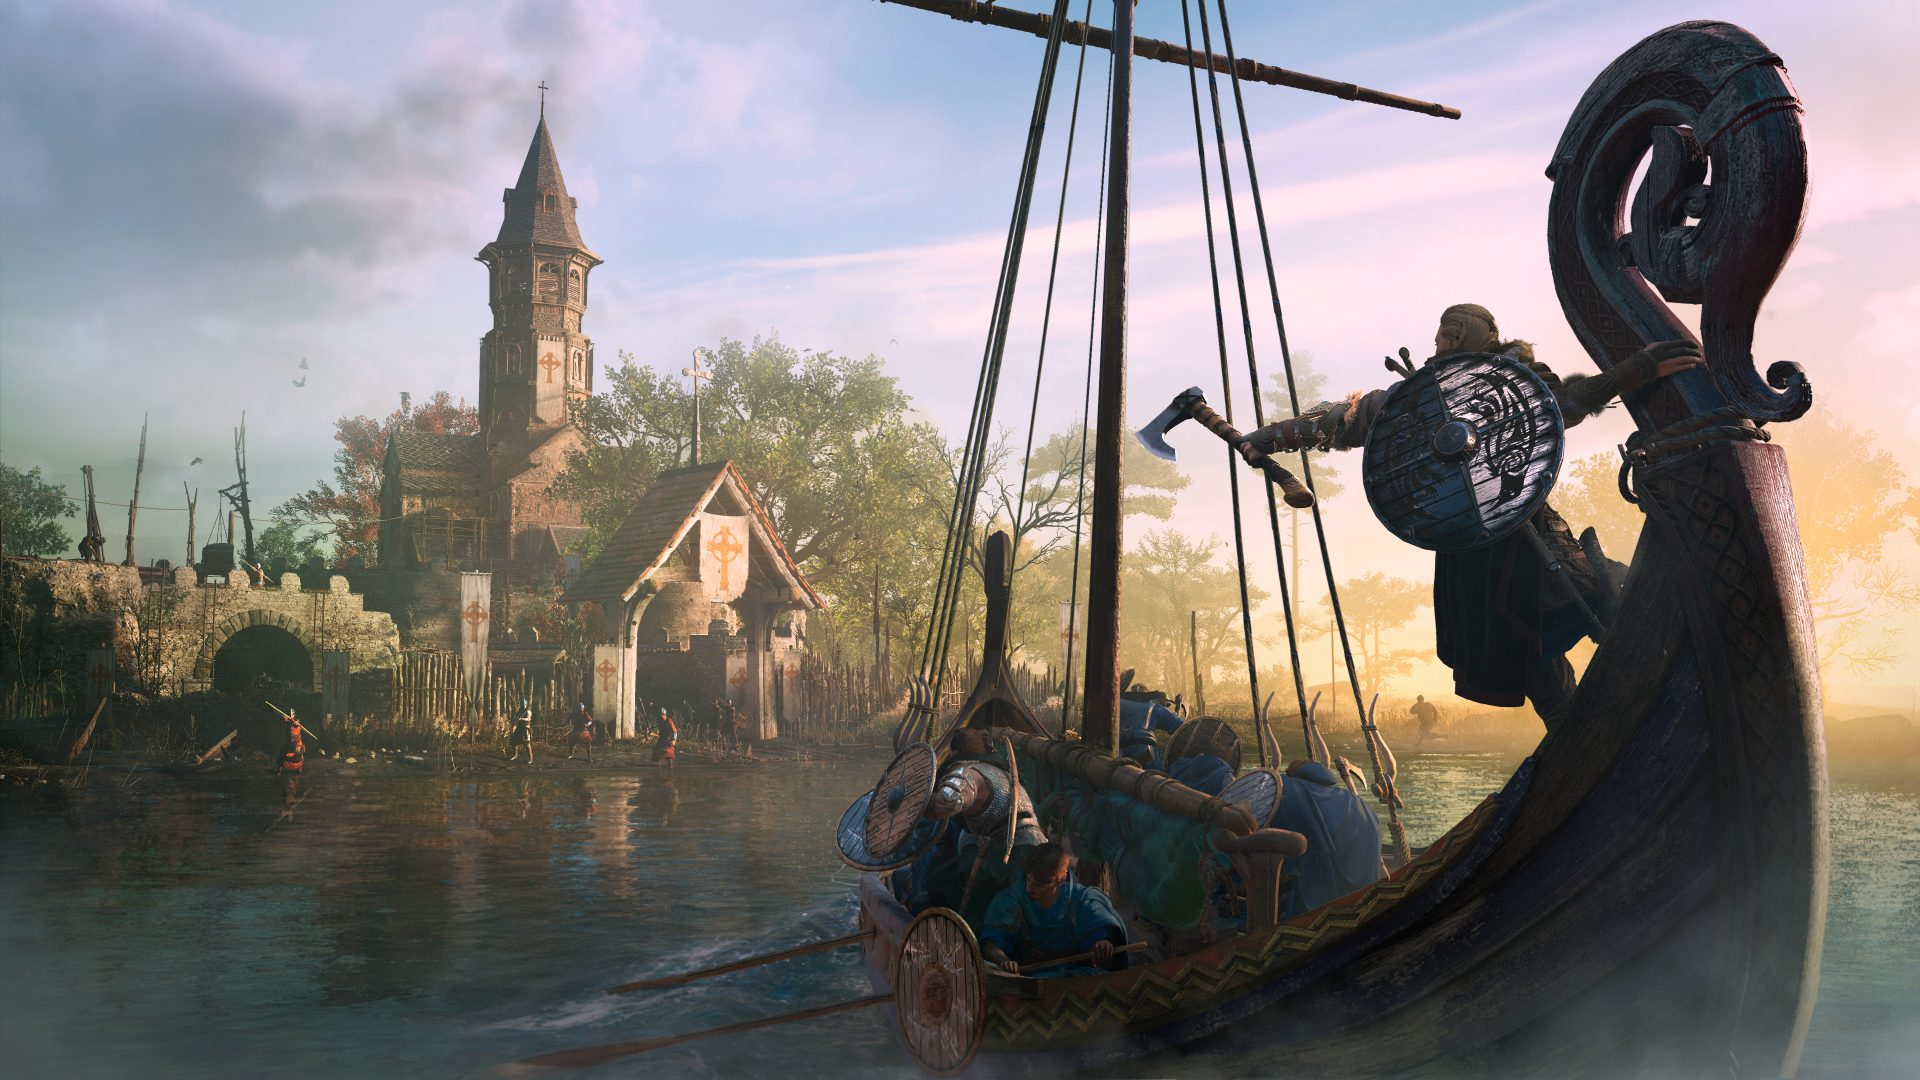 Assassin's Creed Valhalla preview: the grittiest, goofiest Assassin's Creed yet